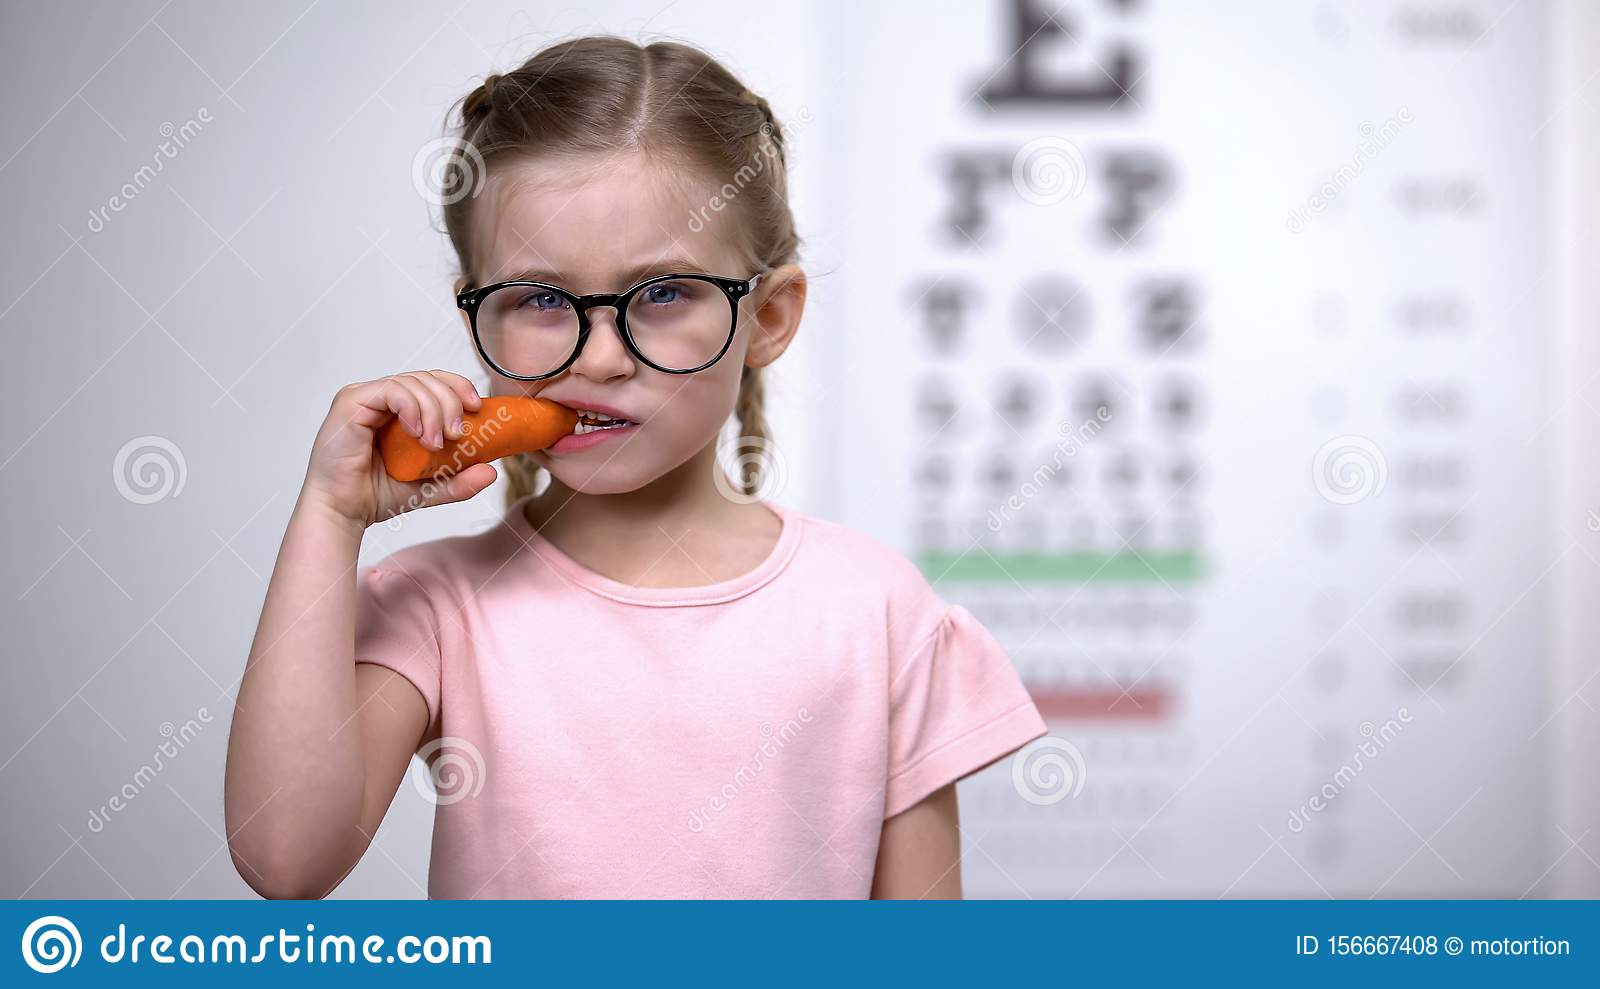 Happy cute girl in eyeglasses eating carrot, vitamin A for good vision, health